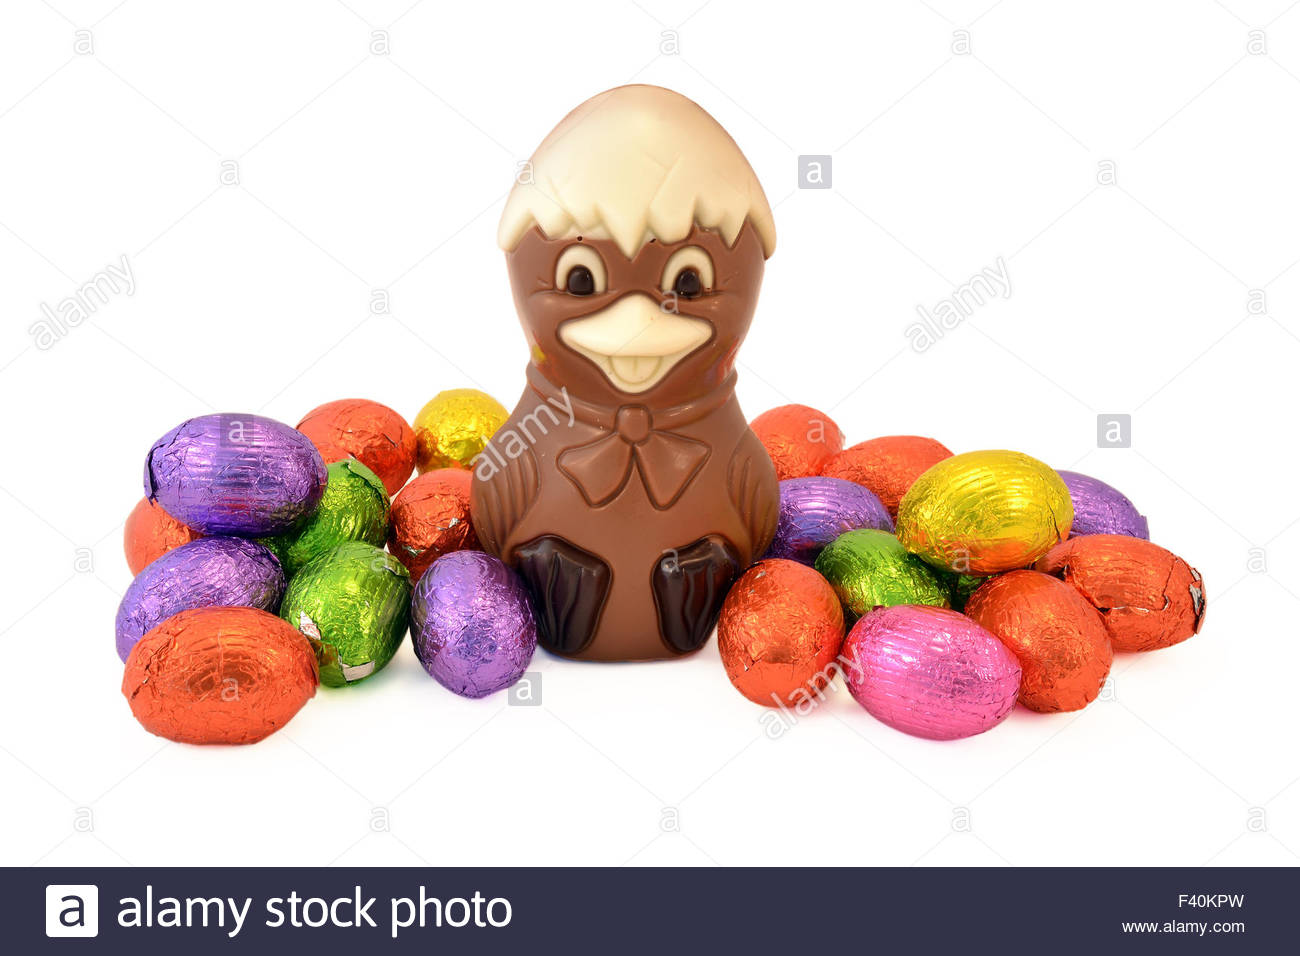 Easter chick with Easter eggs. - Stock Image